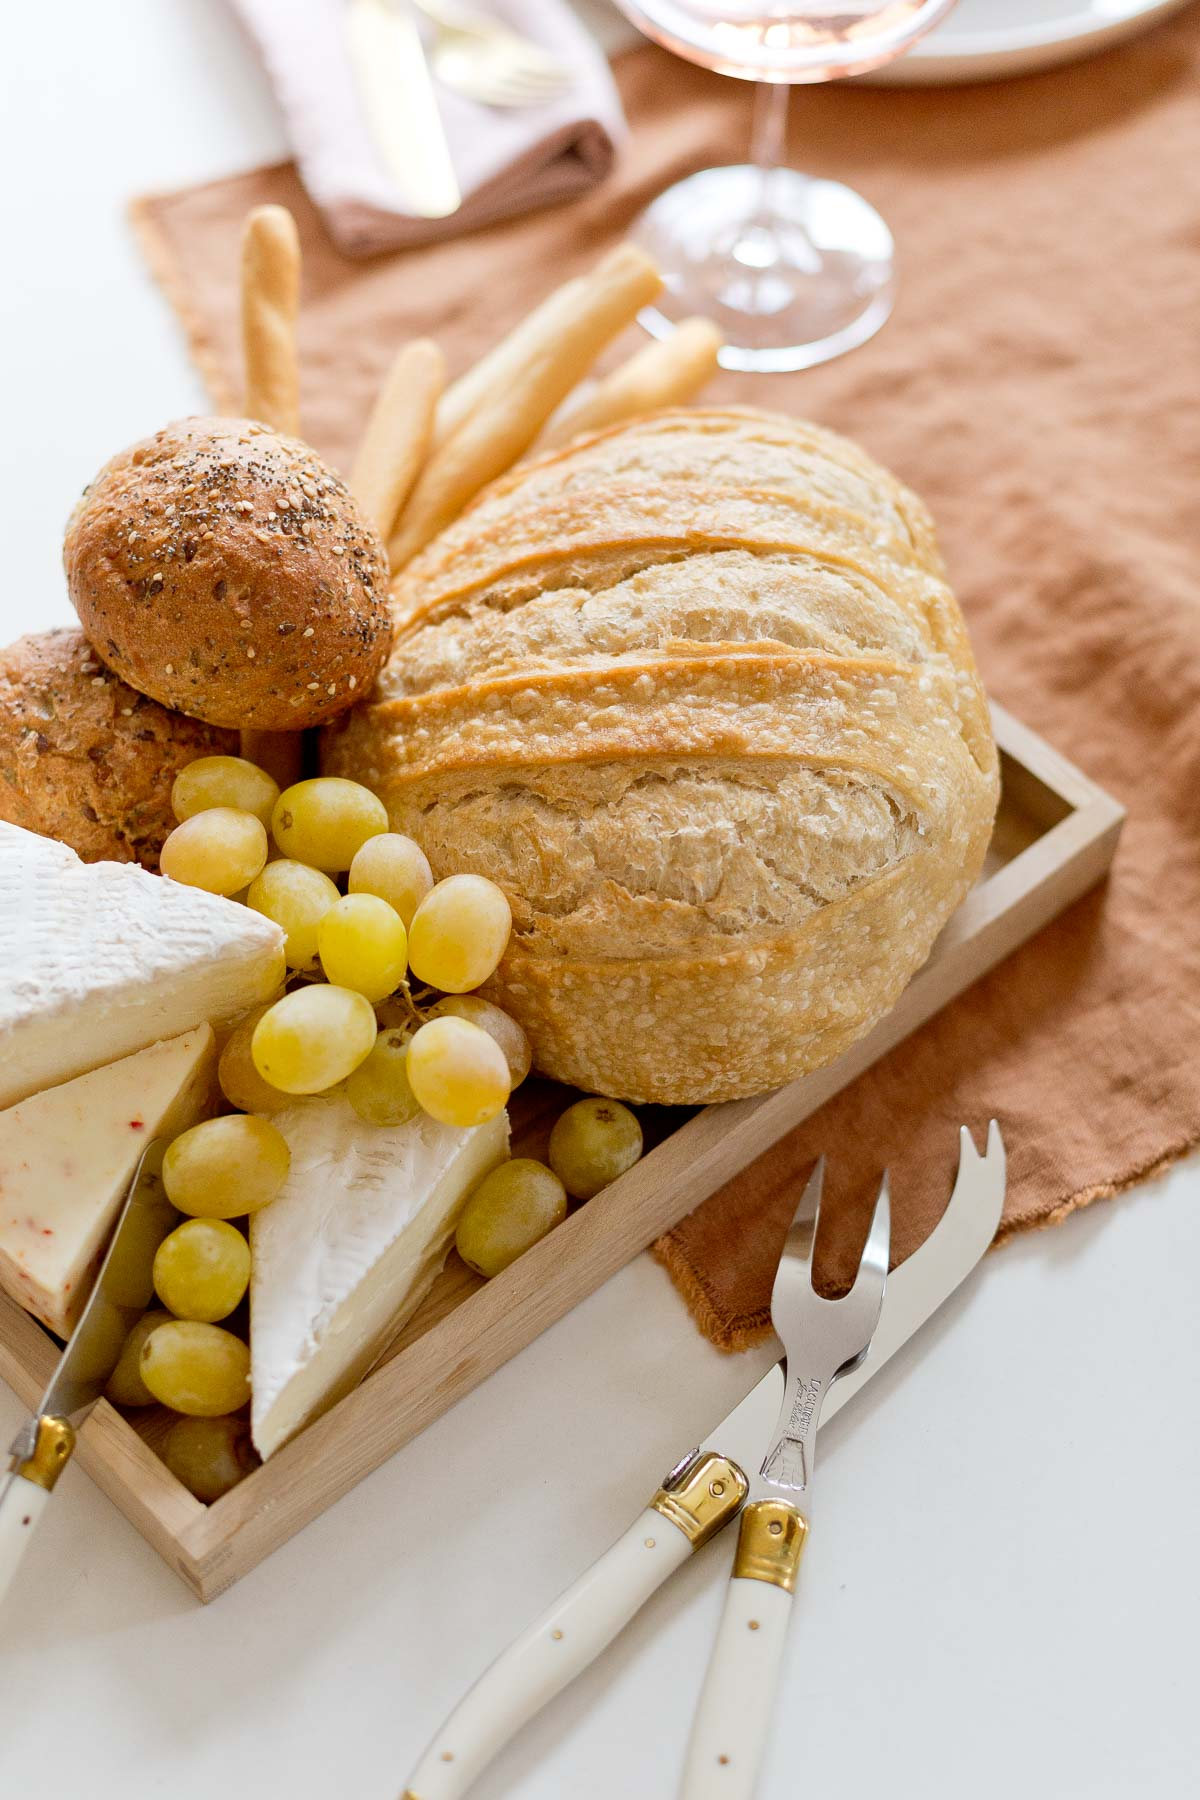 Bread tray with slices of cheese and grapes on a rust colored table runner